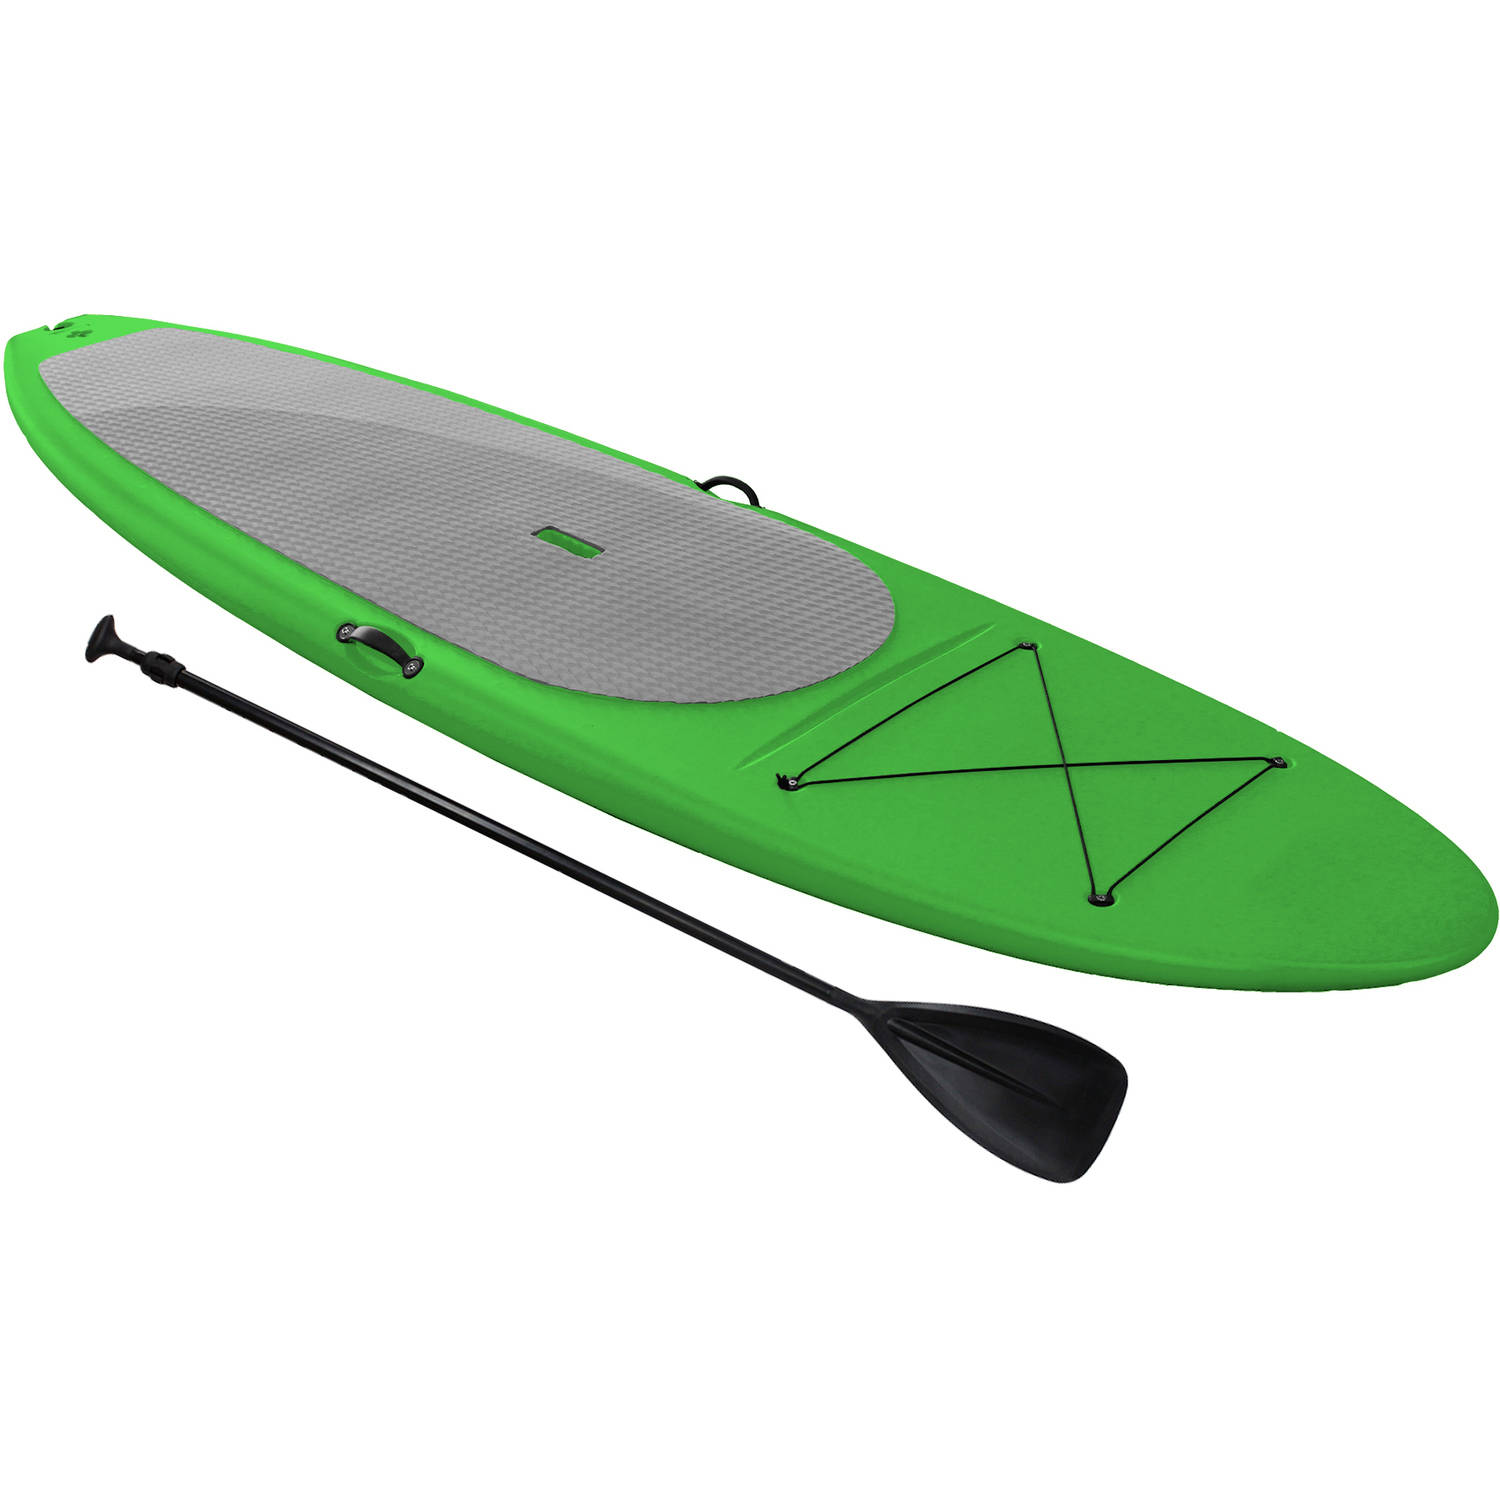 Deciding on a Stand Up Paddle Board (SUP) for Beginners